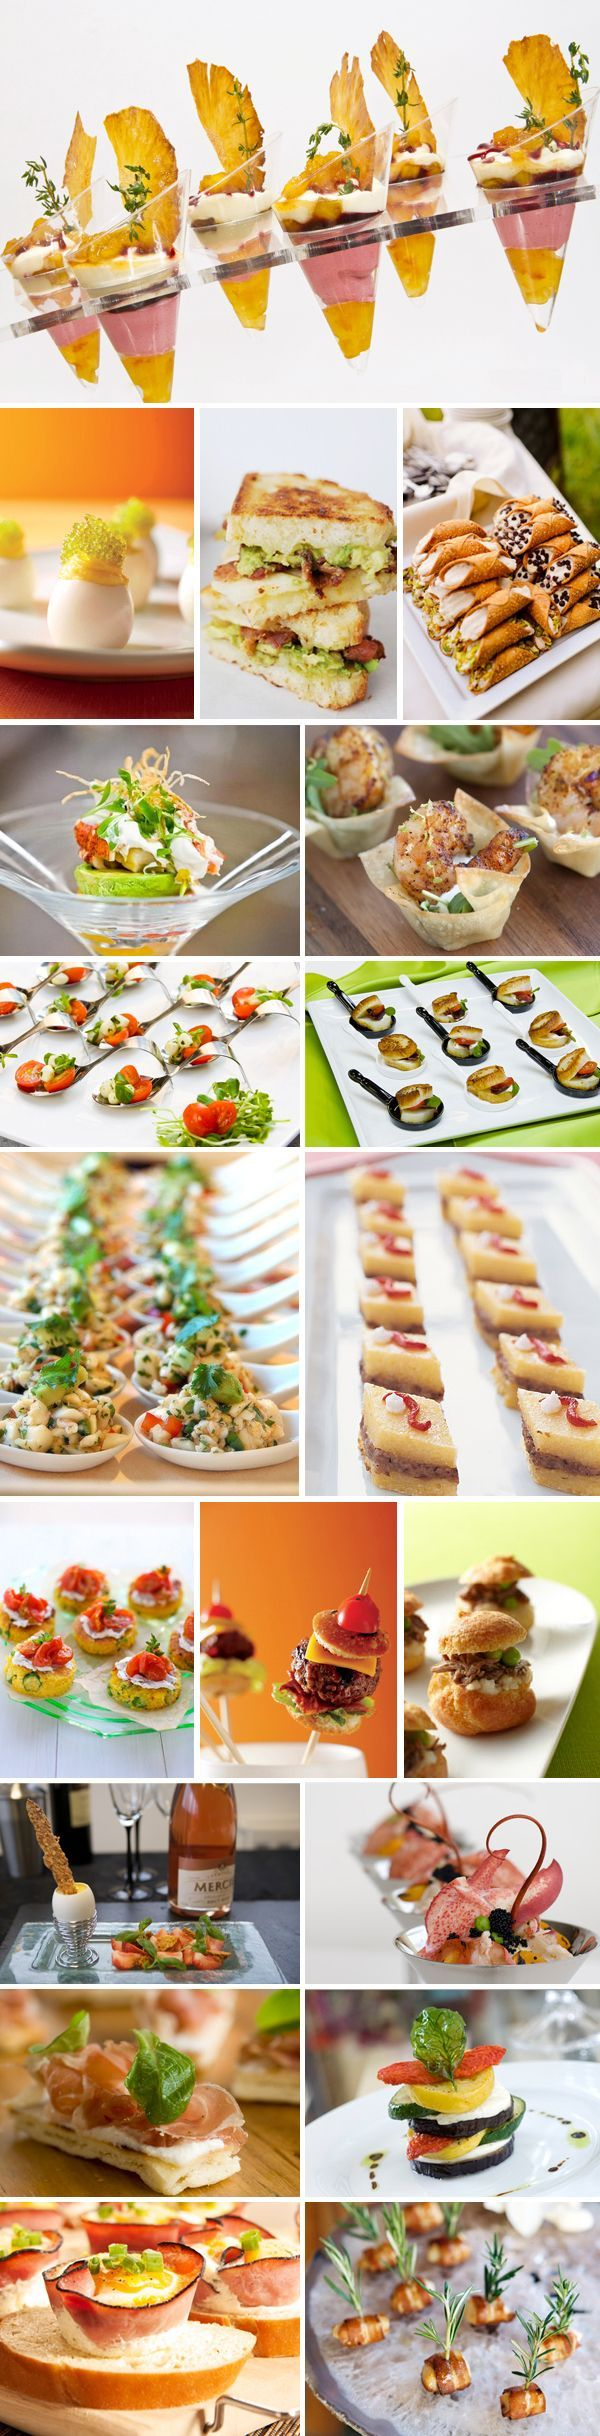 63 Creative Wedding Reception Food